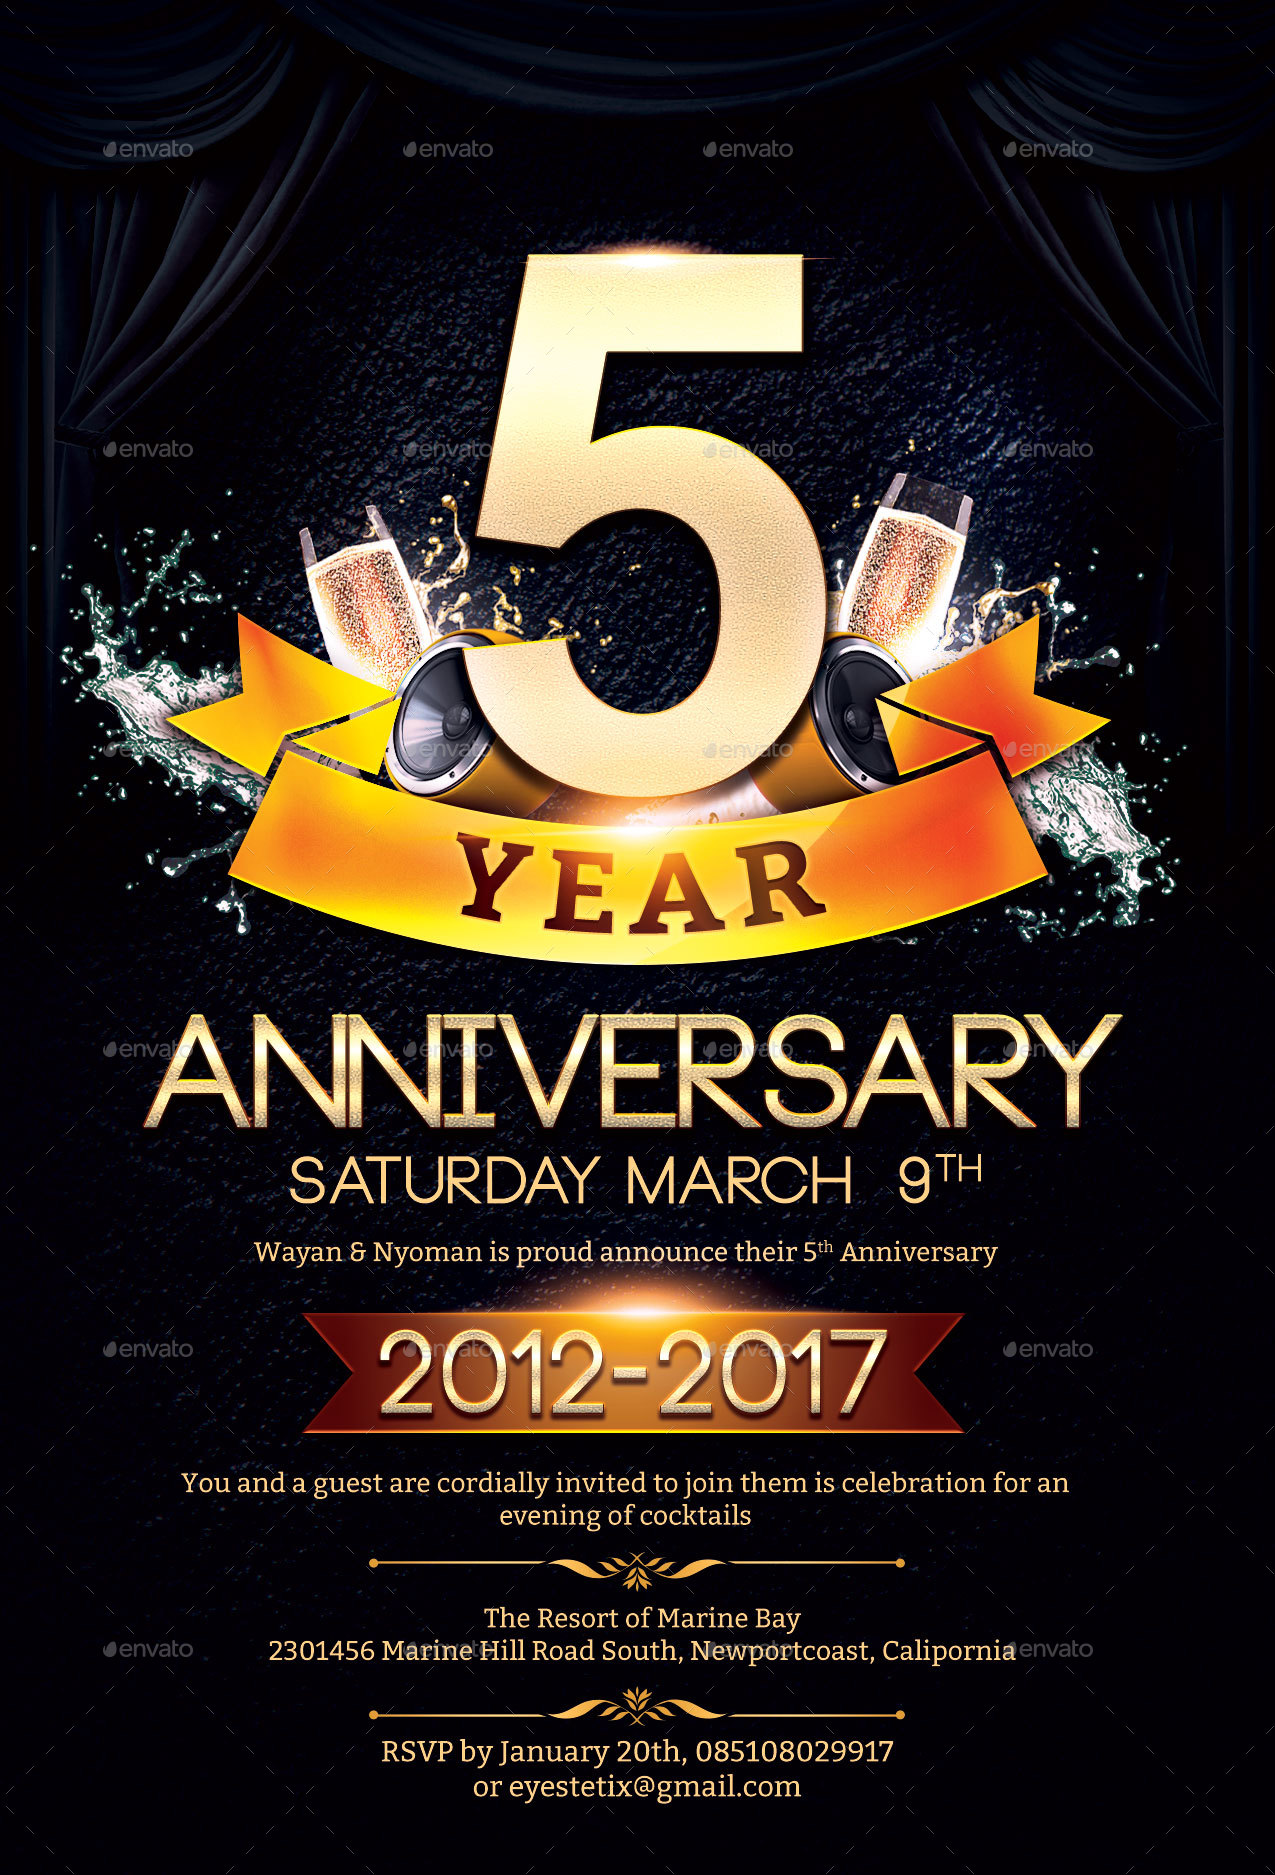 Superb Anniversary Flyer   Anniversary Greeting Cards · Preview/2  Preview/3 Preview/4 ...